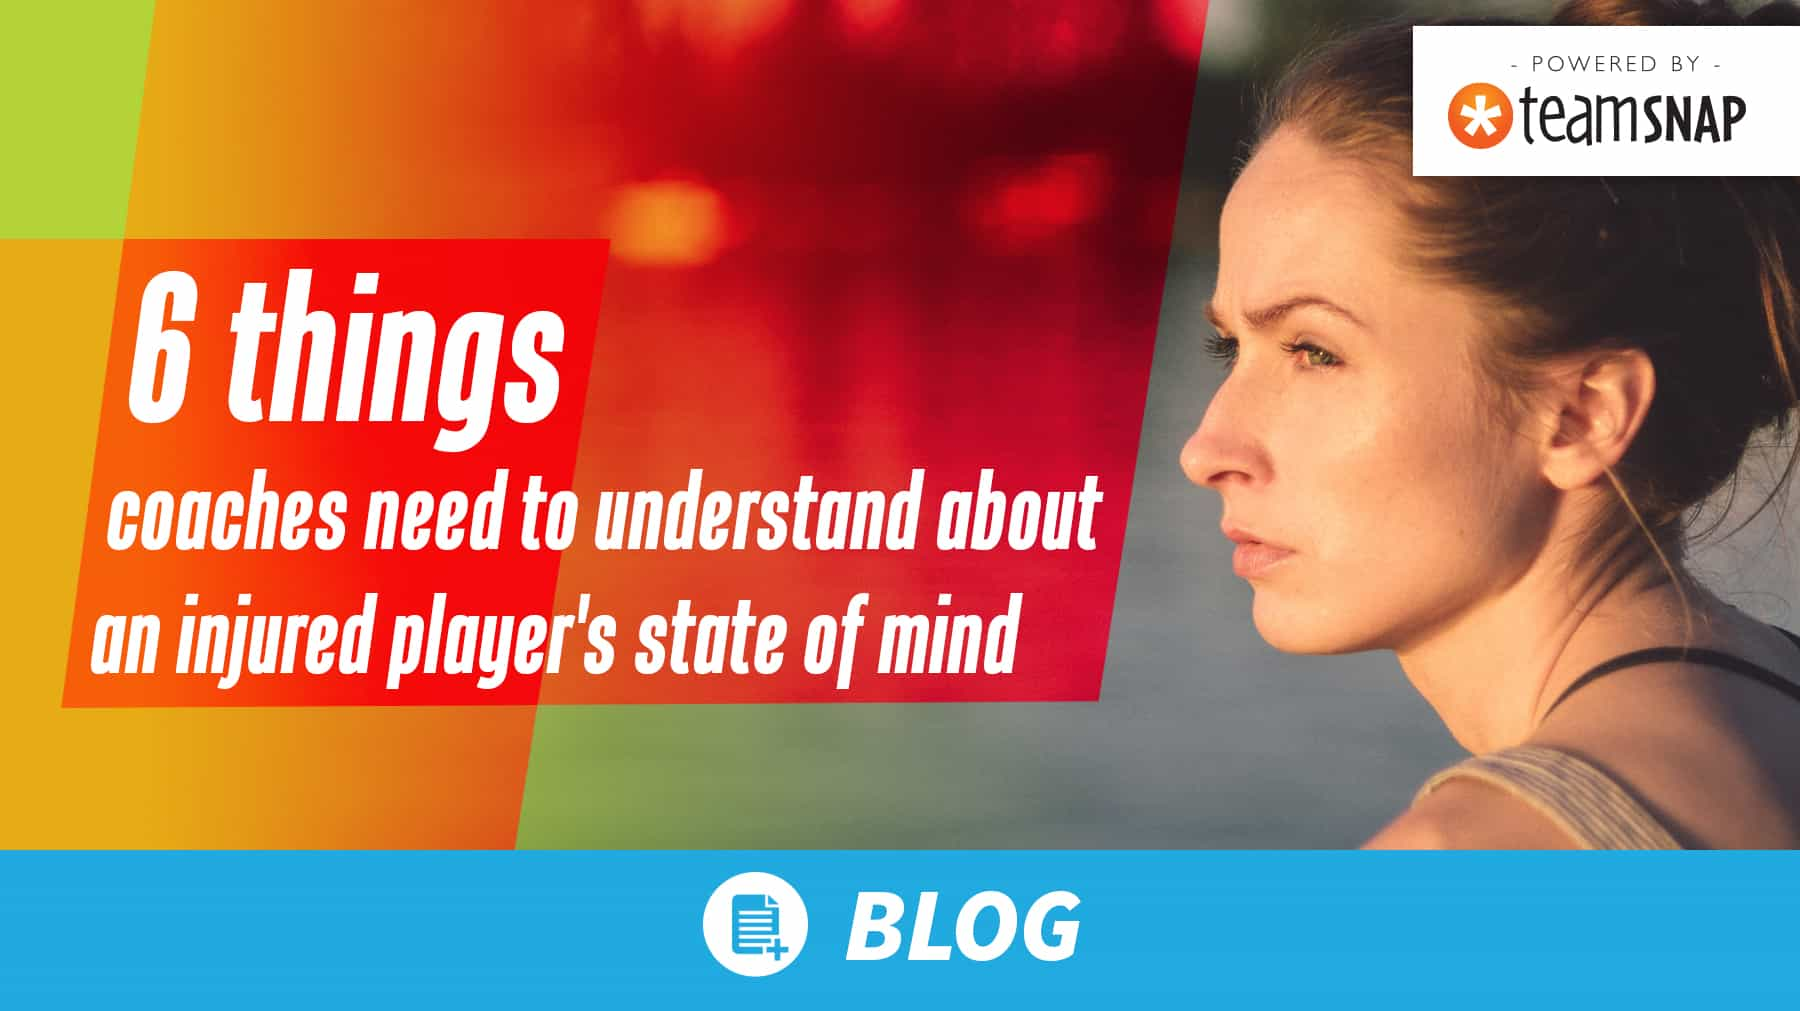 6 things coaches need to understand about an injured player's state of mind